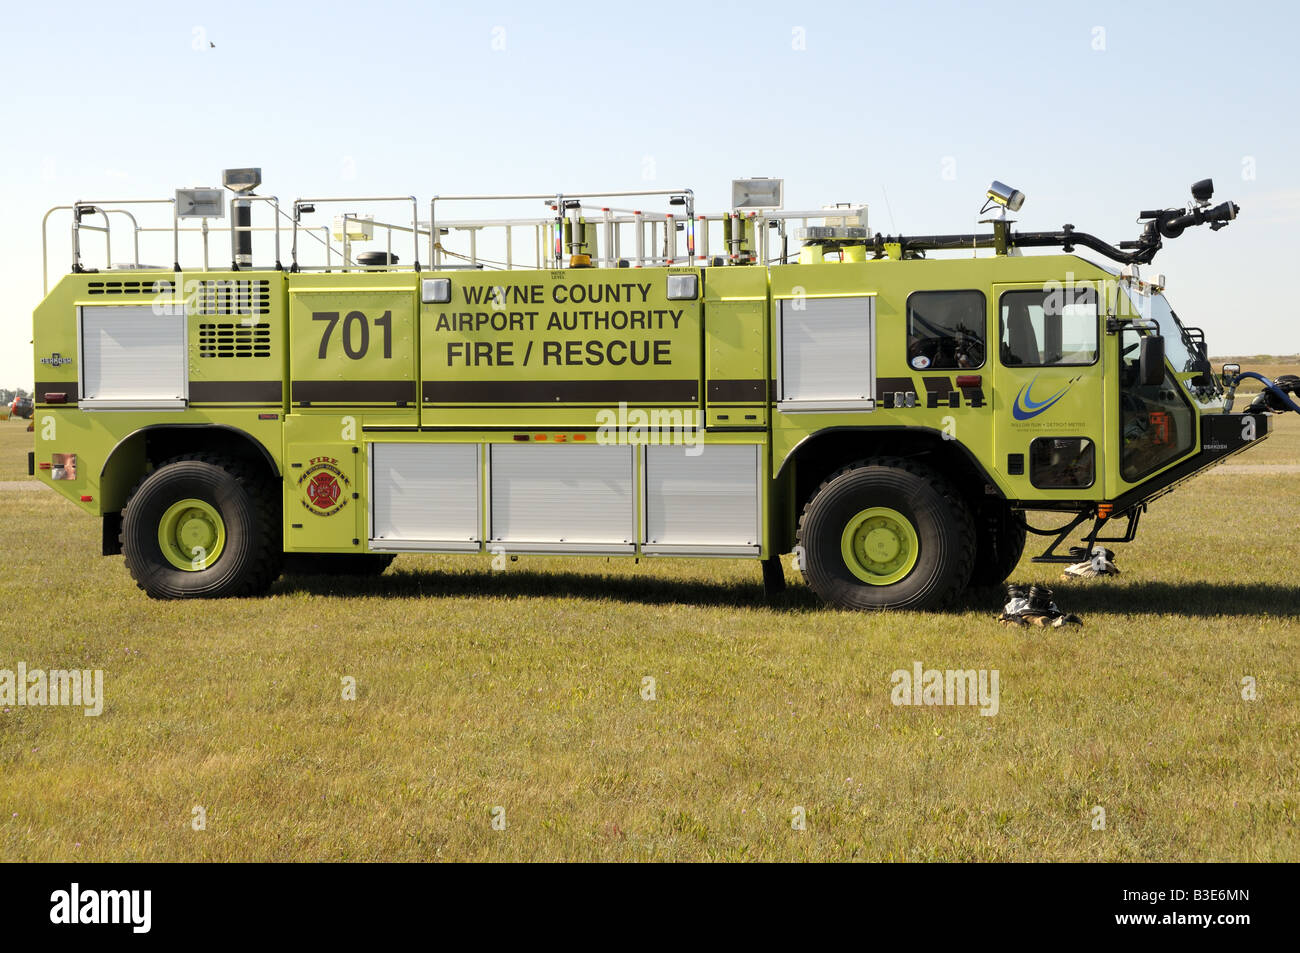 A Wayne County Michigan Airport S Fire Department S